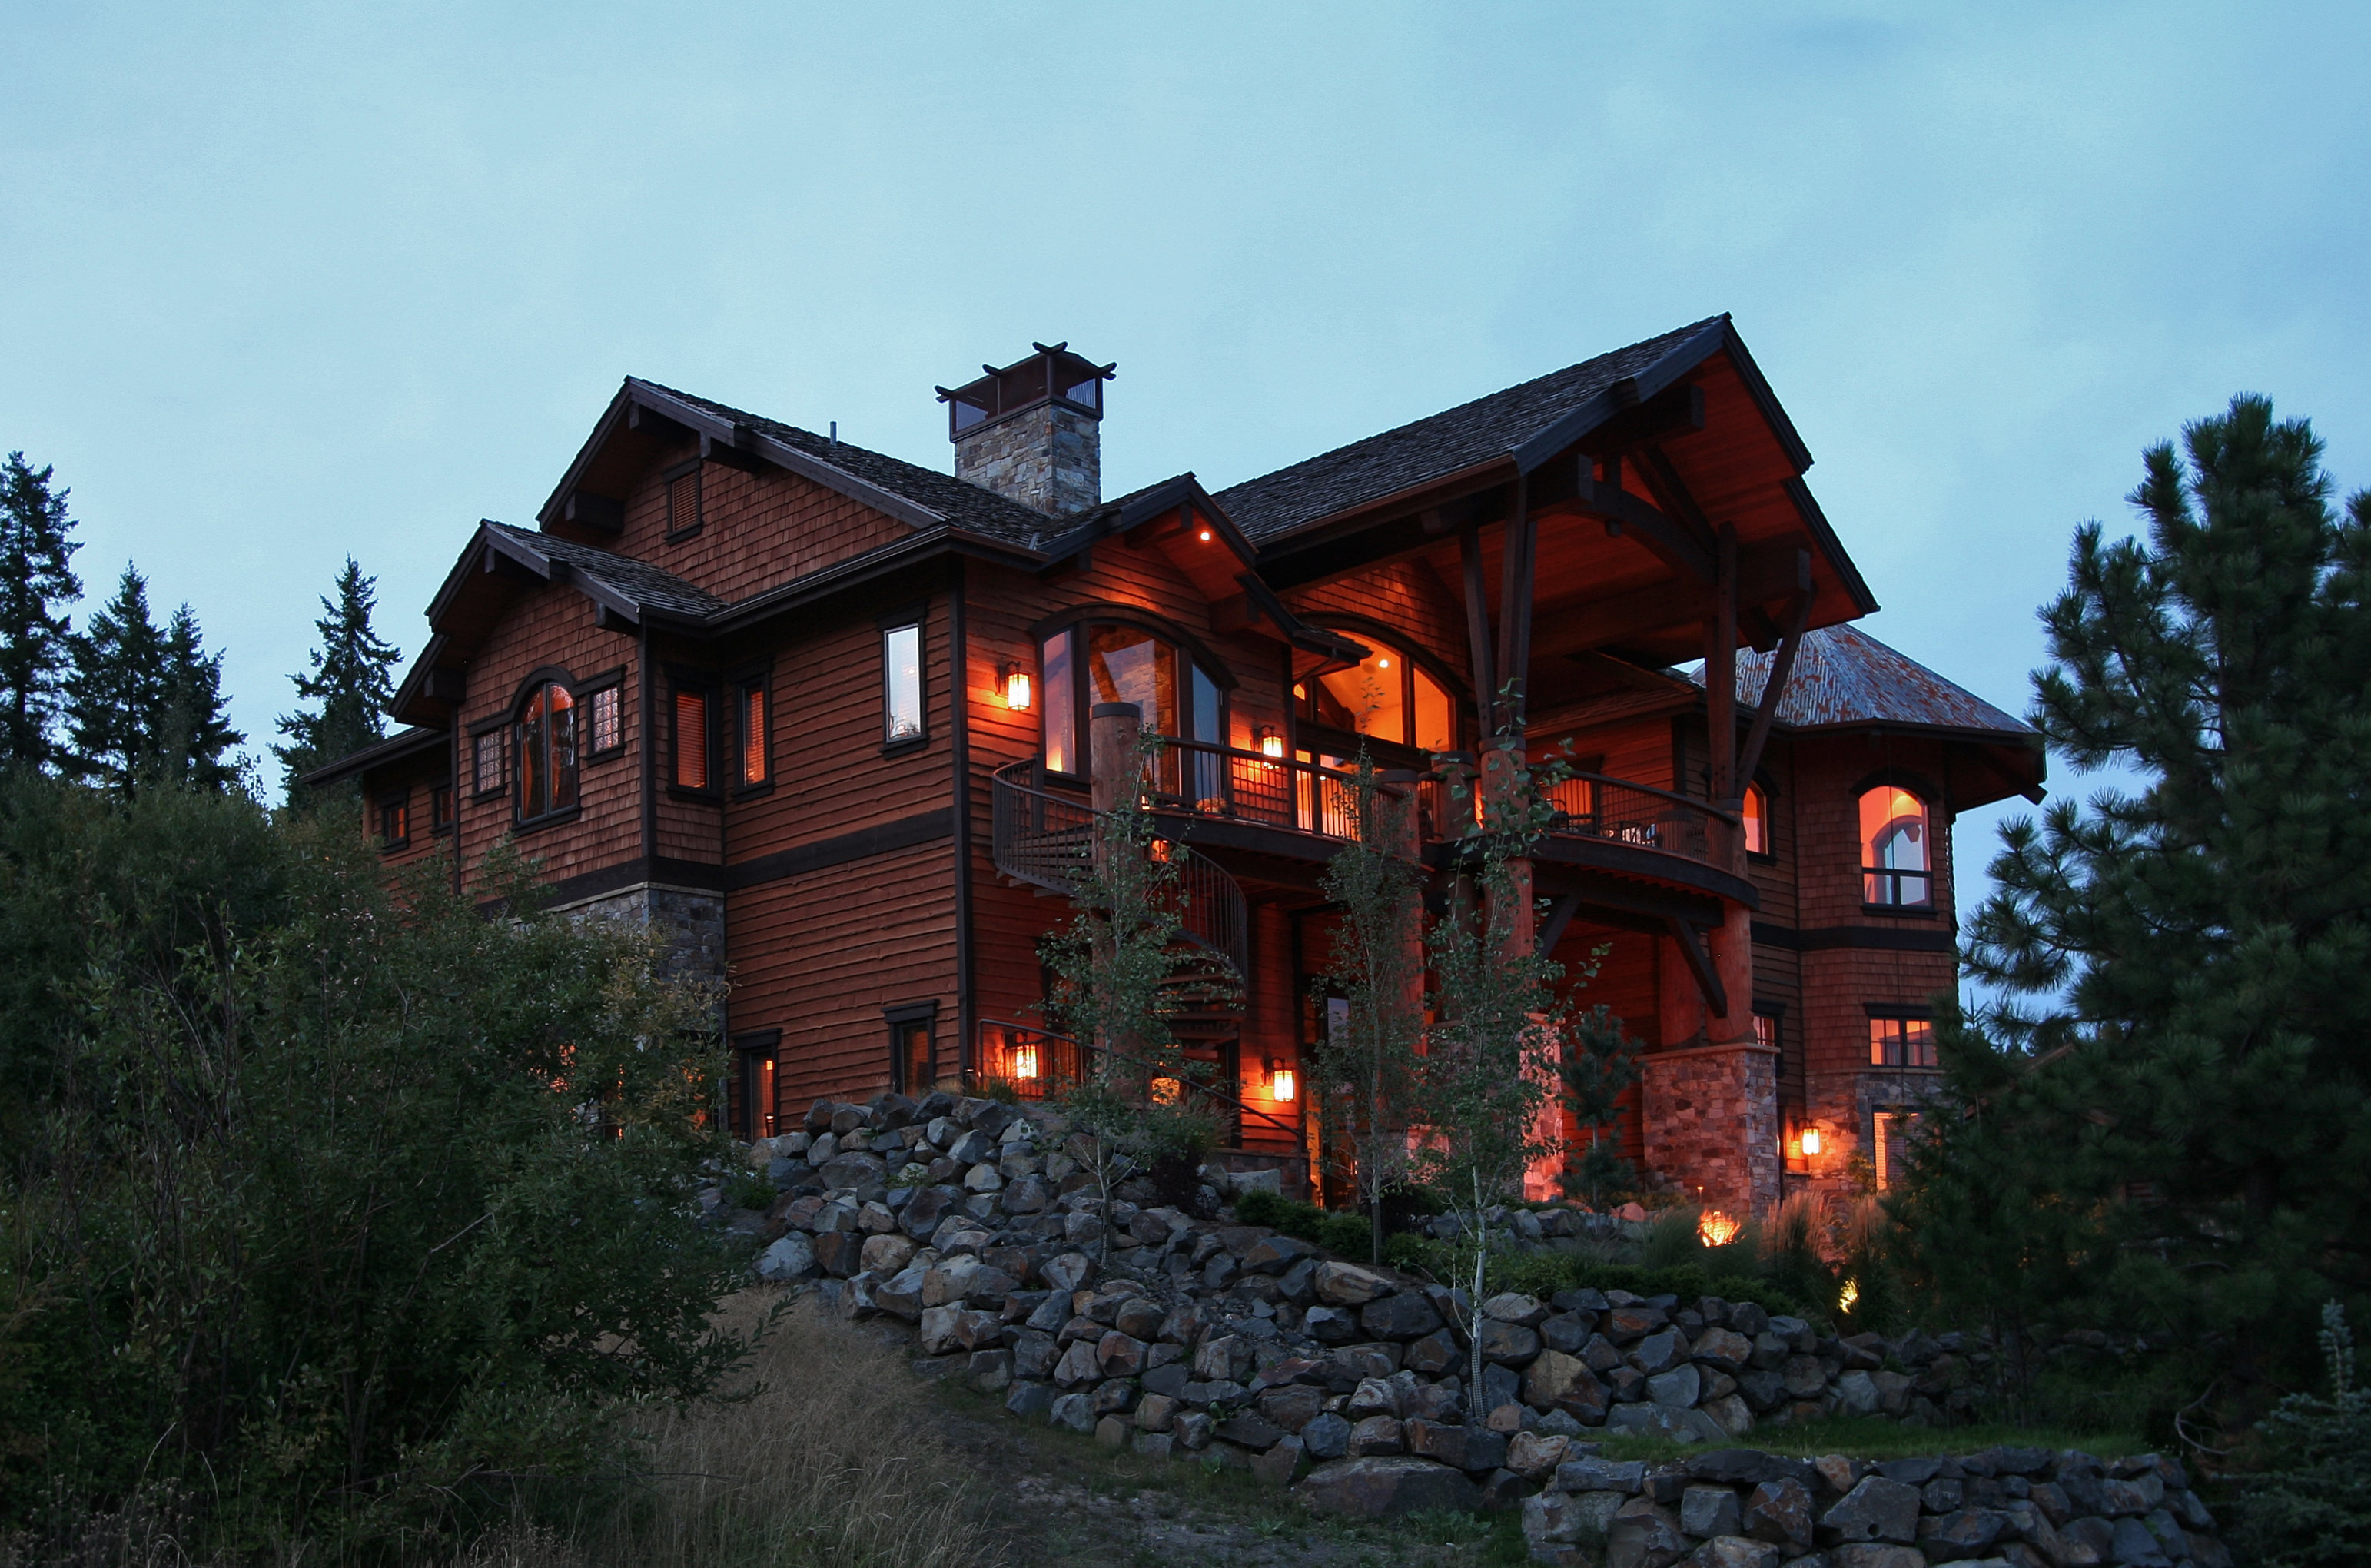 Black rock homes north idaho for Cost to build a house in little rock